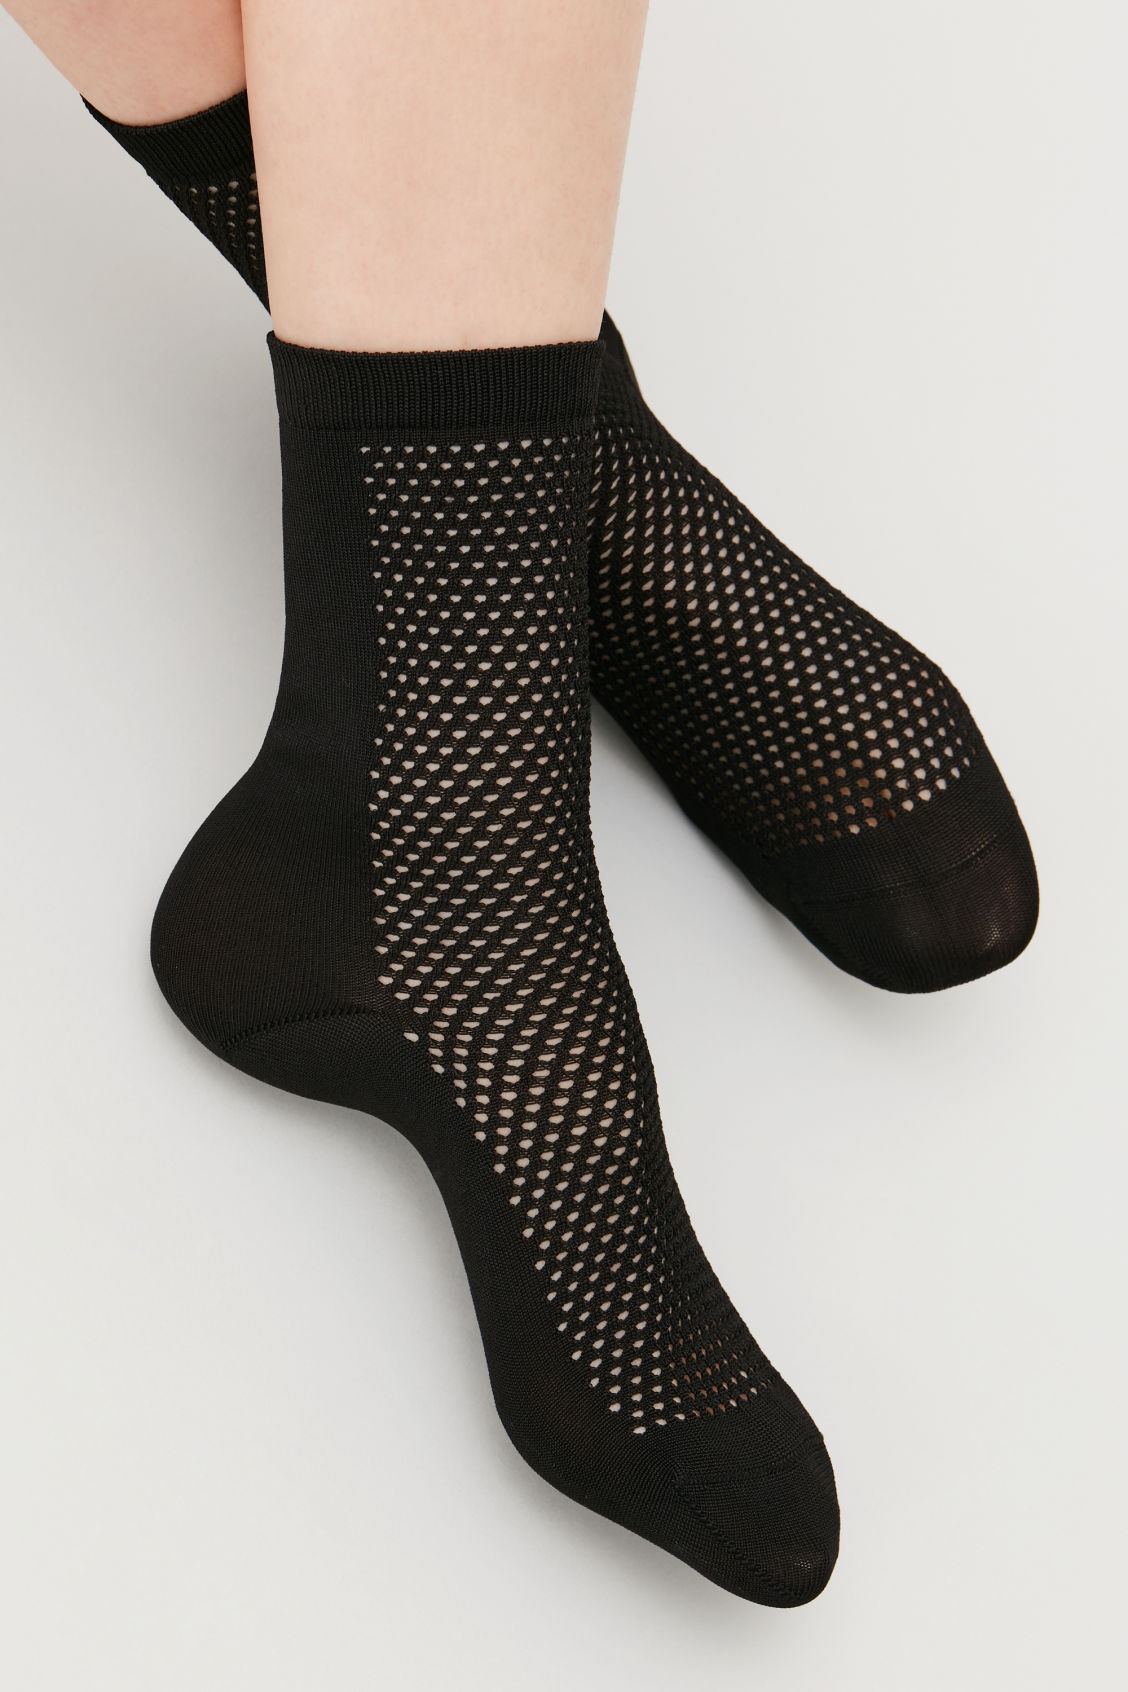 Detailed image of Cos crochet patterned ankle socks in black